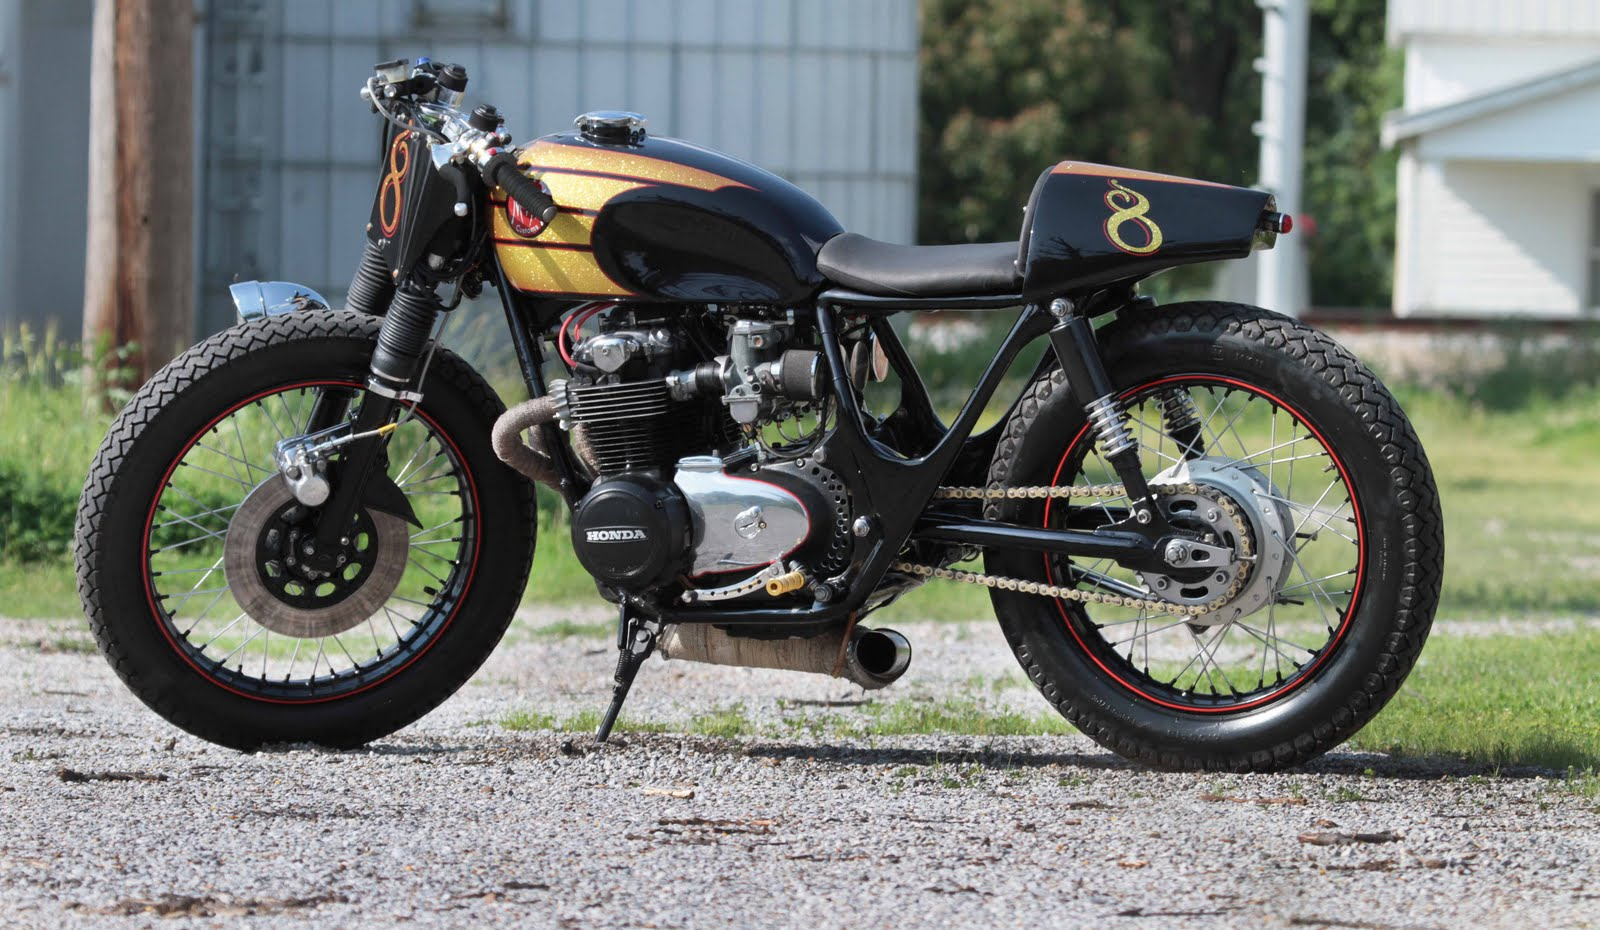 Cafe Racer Special: Honda CB 500 '72 Cafe Racer by M&M Customs